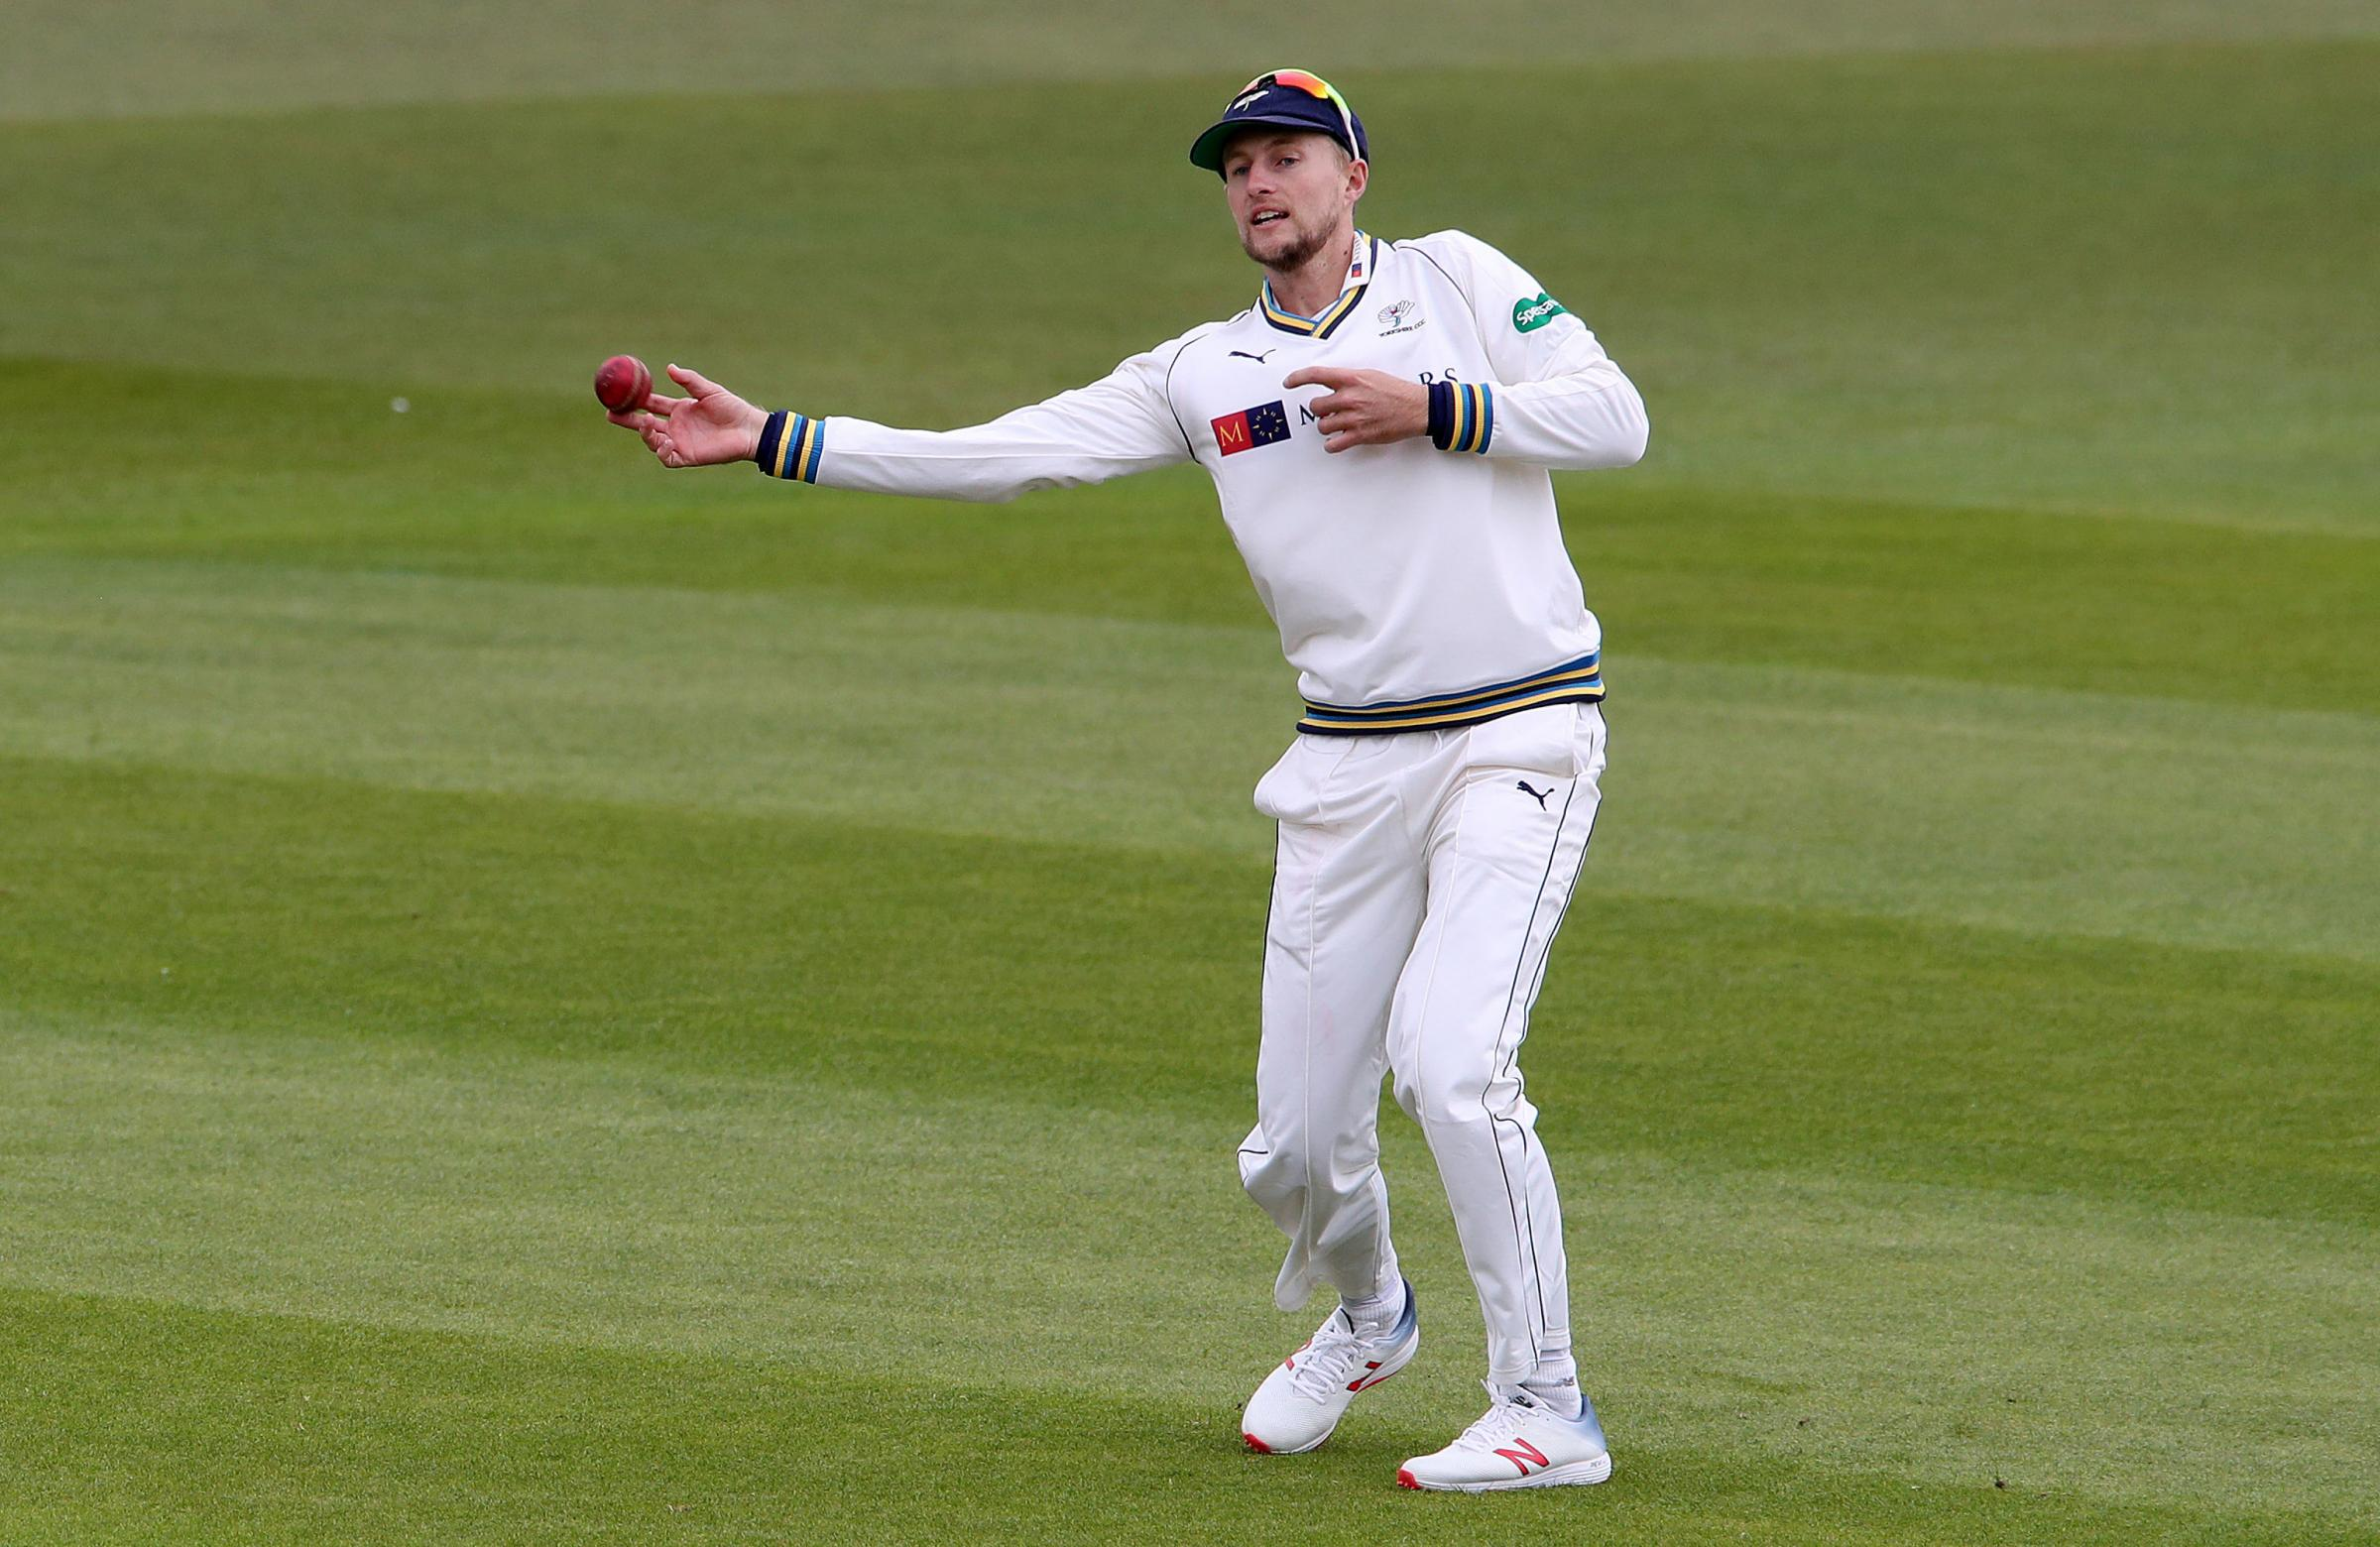 Yorkshire's Joe Root is fine after leaving the field nursing his left hand following an attempt to stop a drive from Joe Clarke Picture: Nick Potts/PA Wire